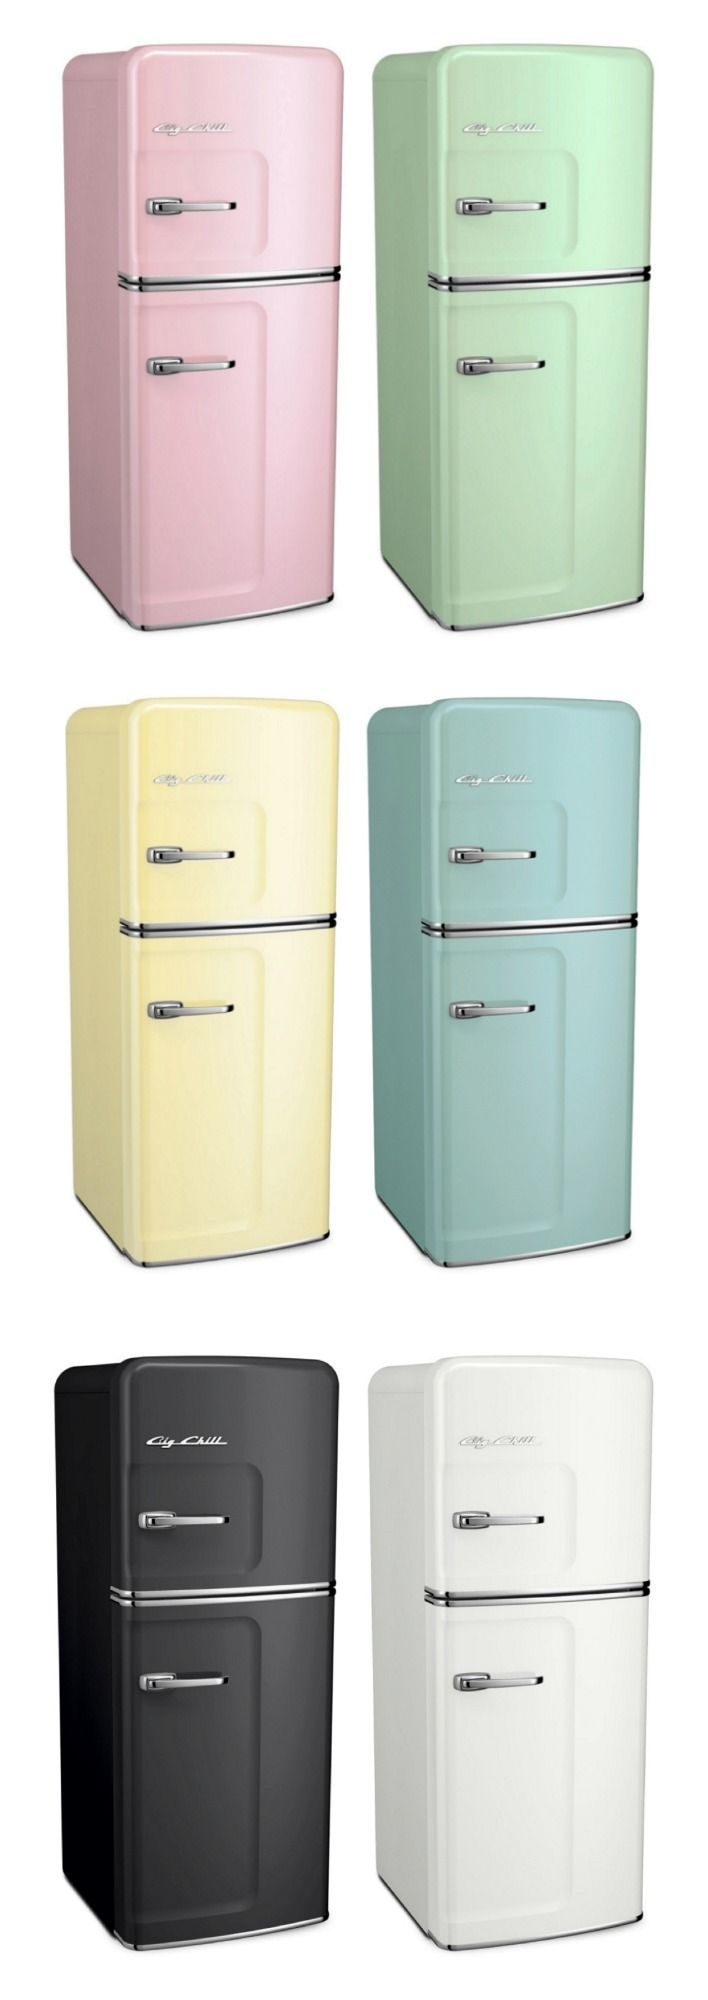 Featuring: The Big Chill Slim Refrigerator